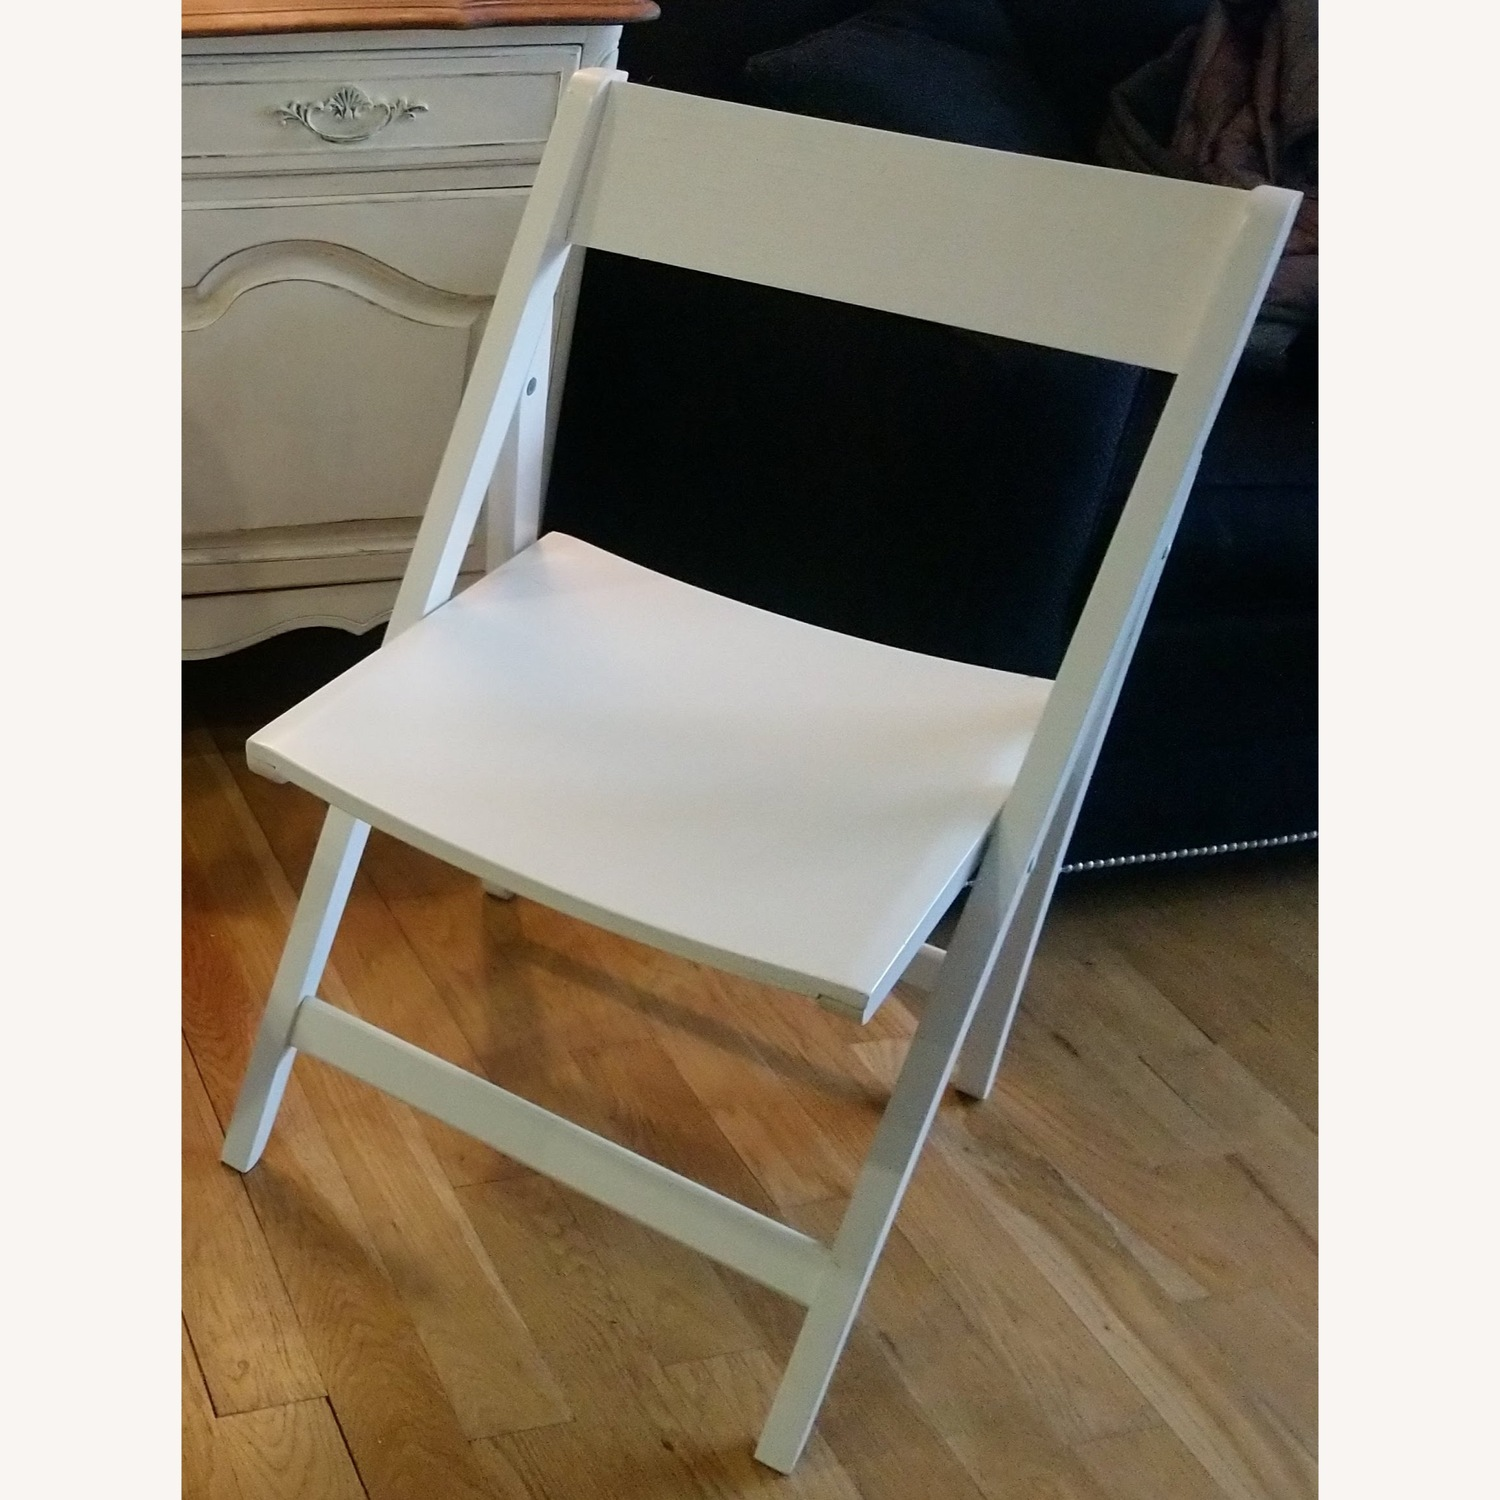 Two Rarely Used Folding Wooden Chairs - image-1